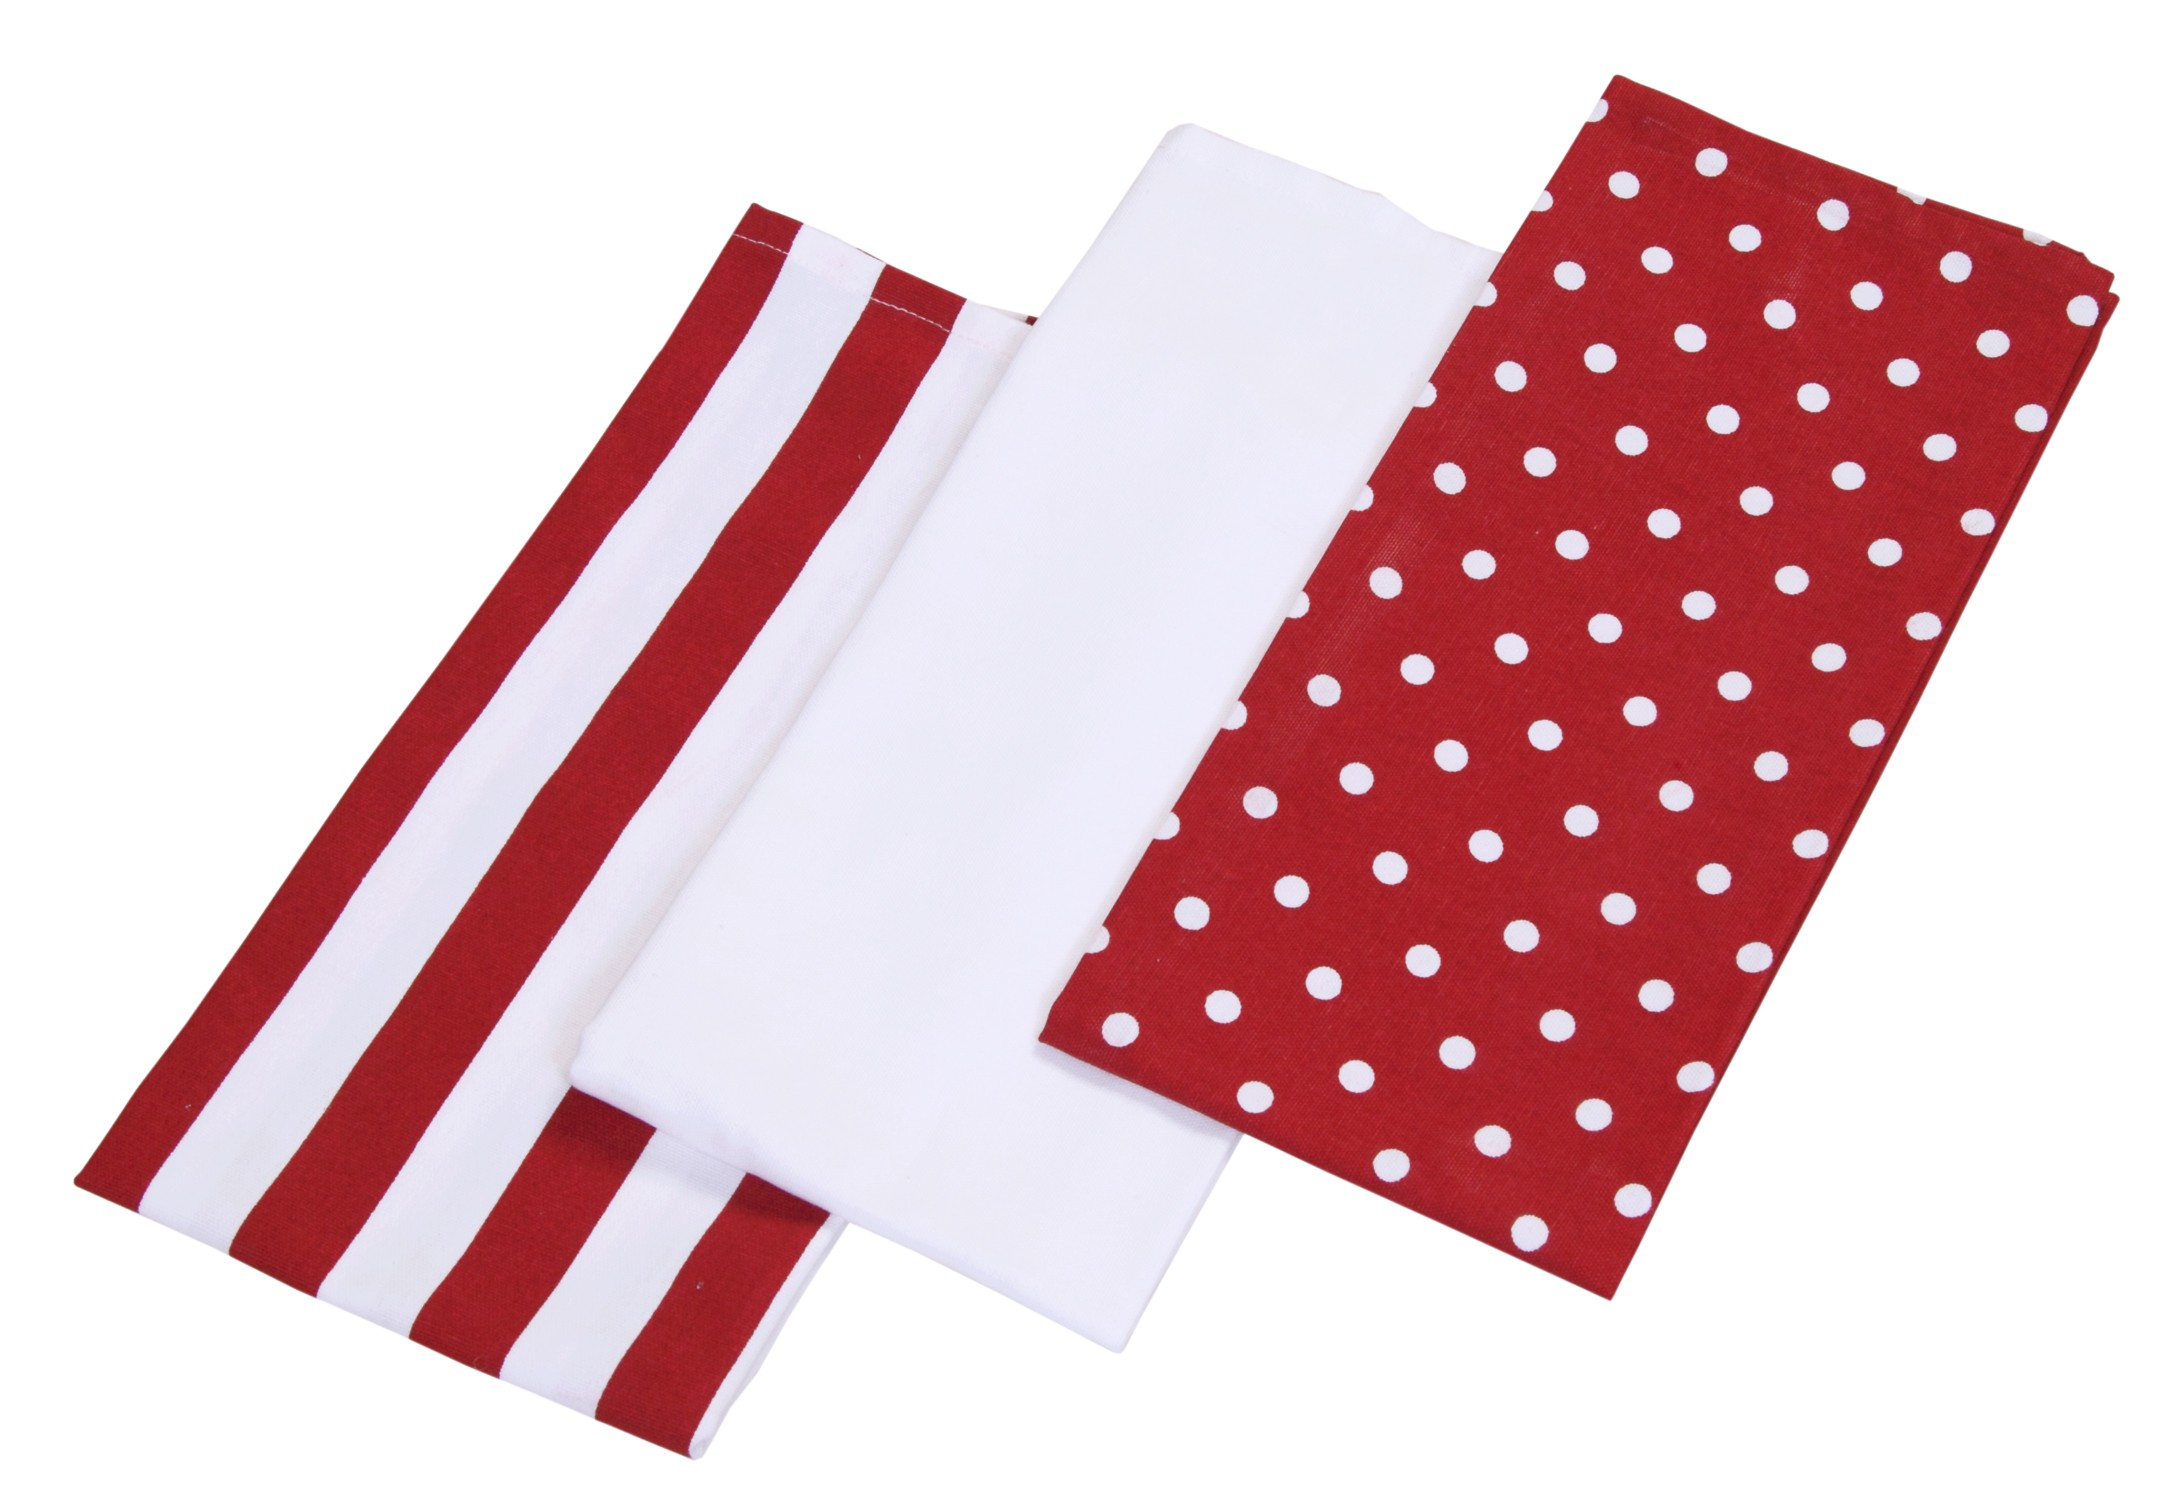 Homescapes Stripes And Polka Dot Kitchen Towel Red And White